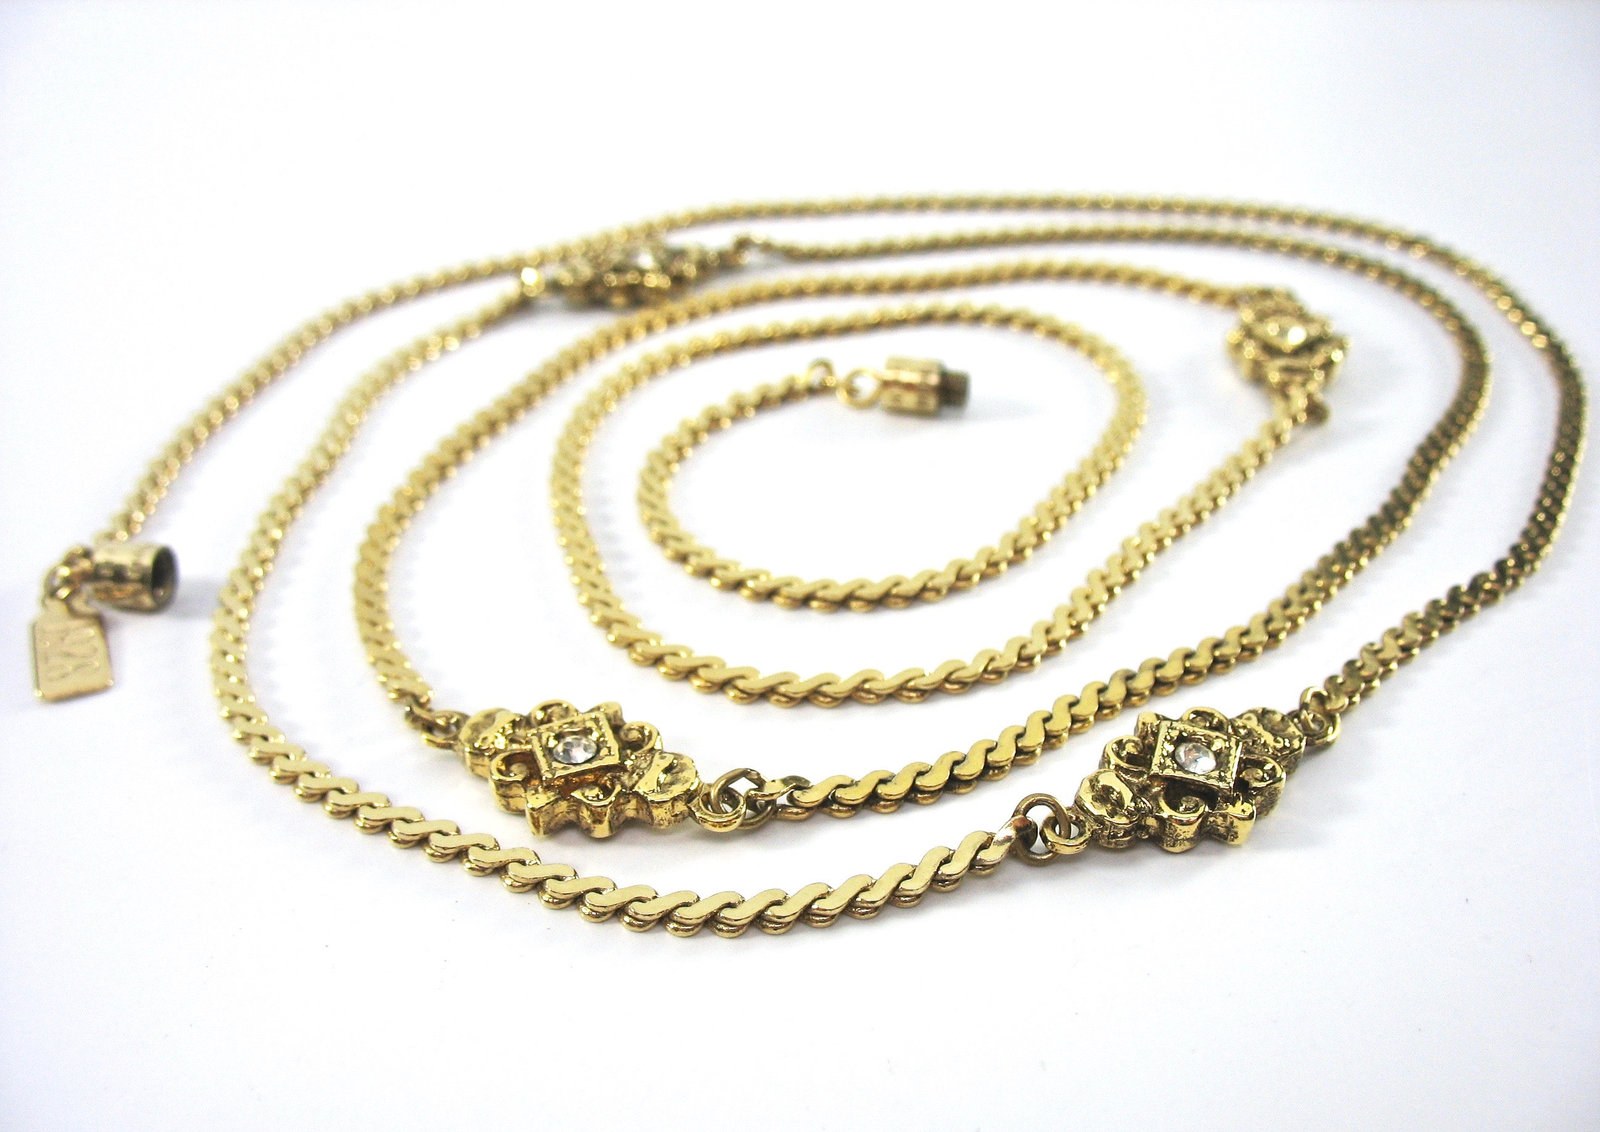 Rhinestone Gold Chain Necklace, 1928 Hang Tag, Made in USA, Long, Barrel Clasp,